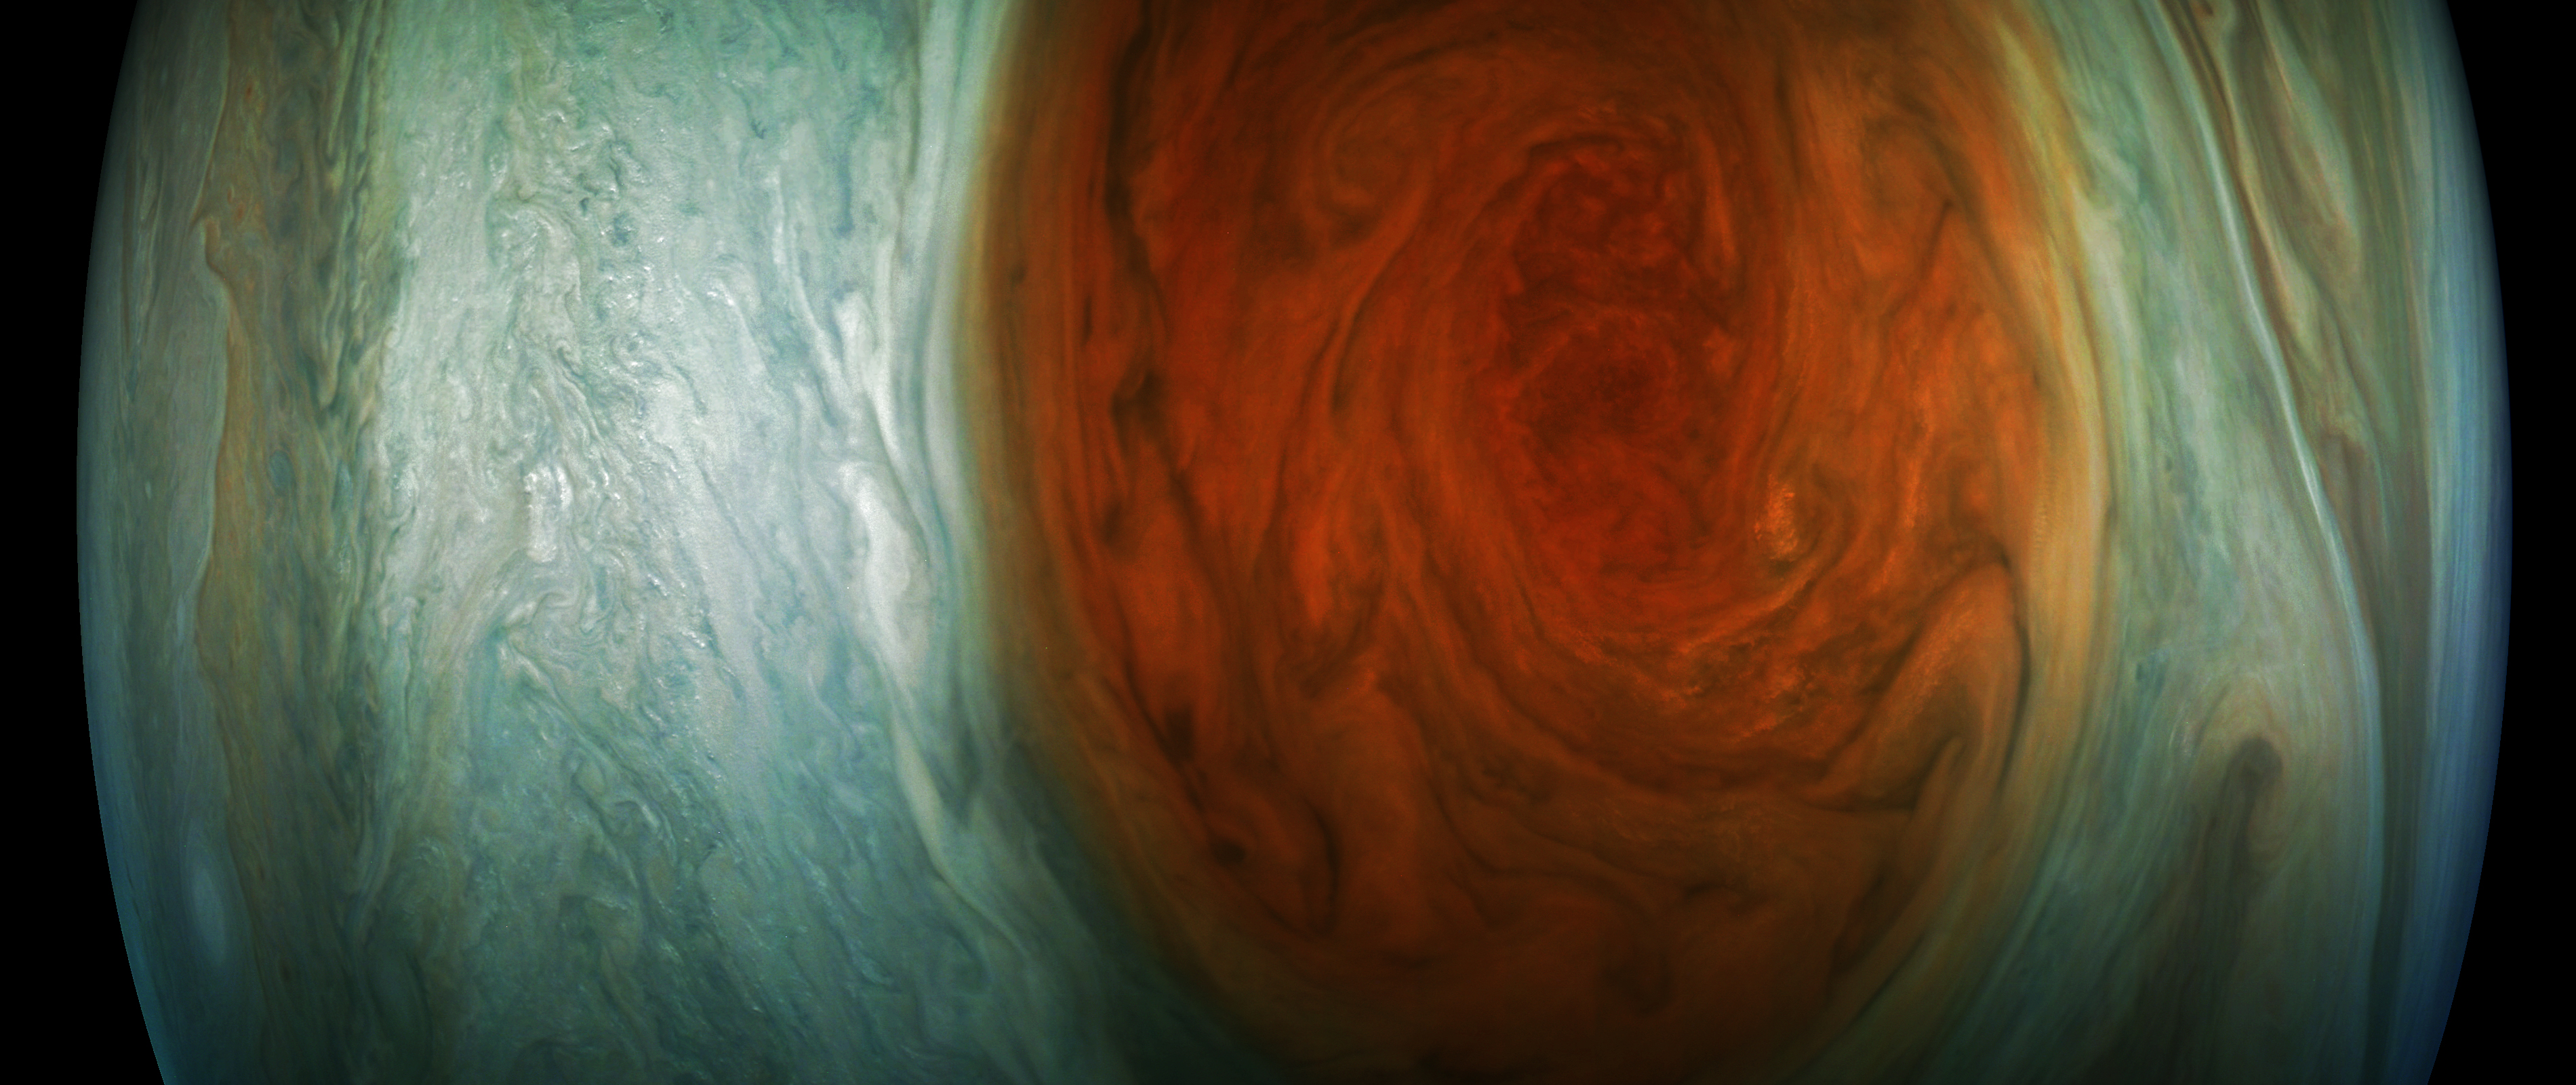 jupiters great red spot enhanced color - Picture Color